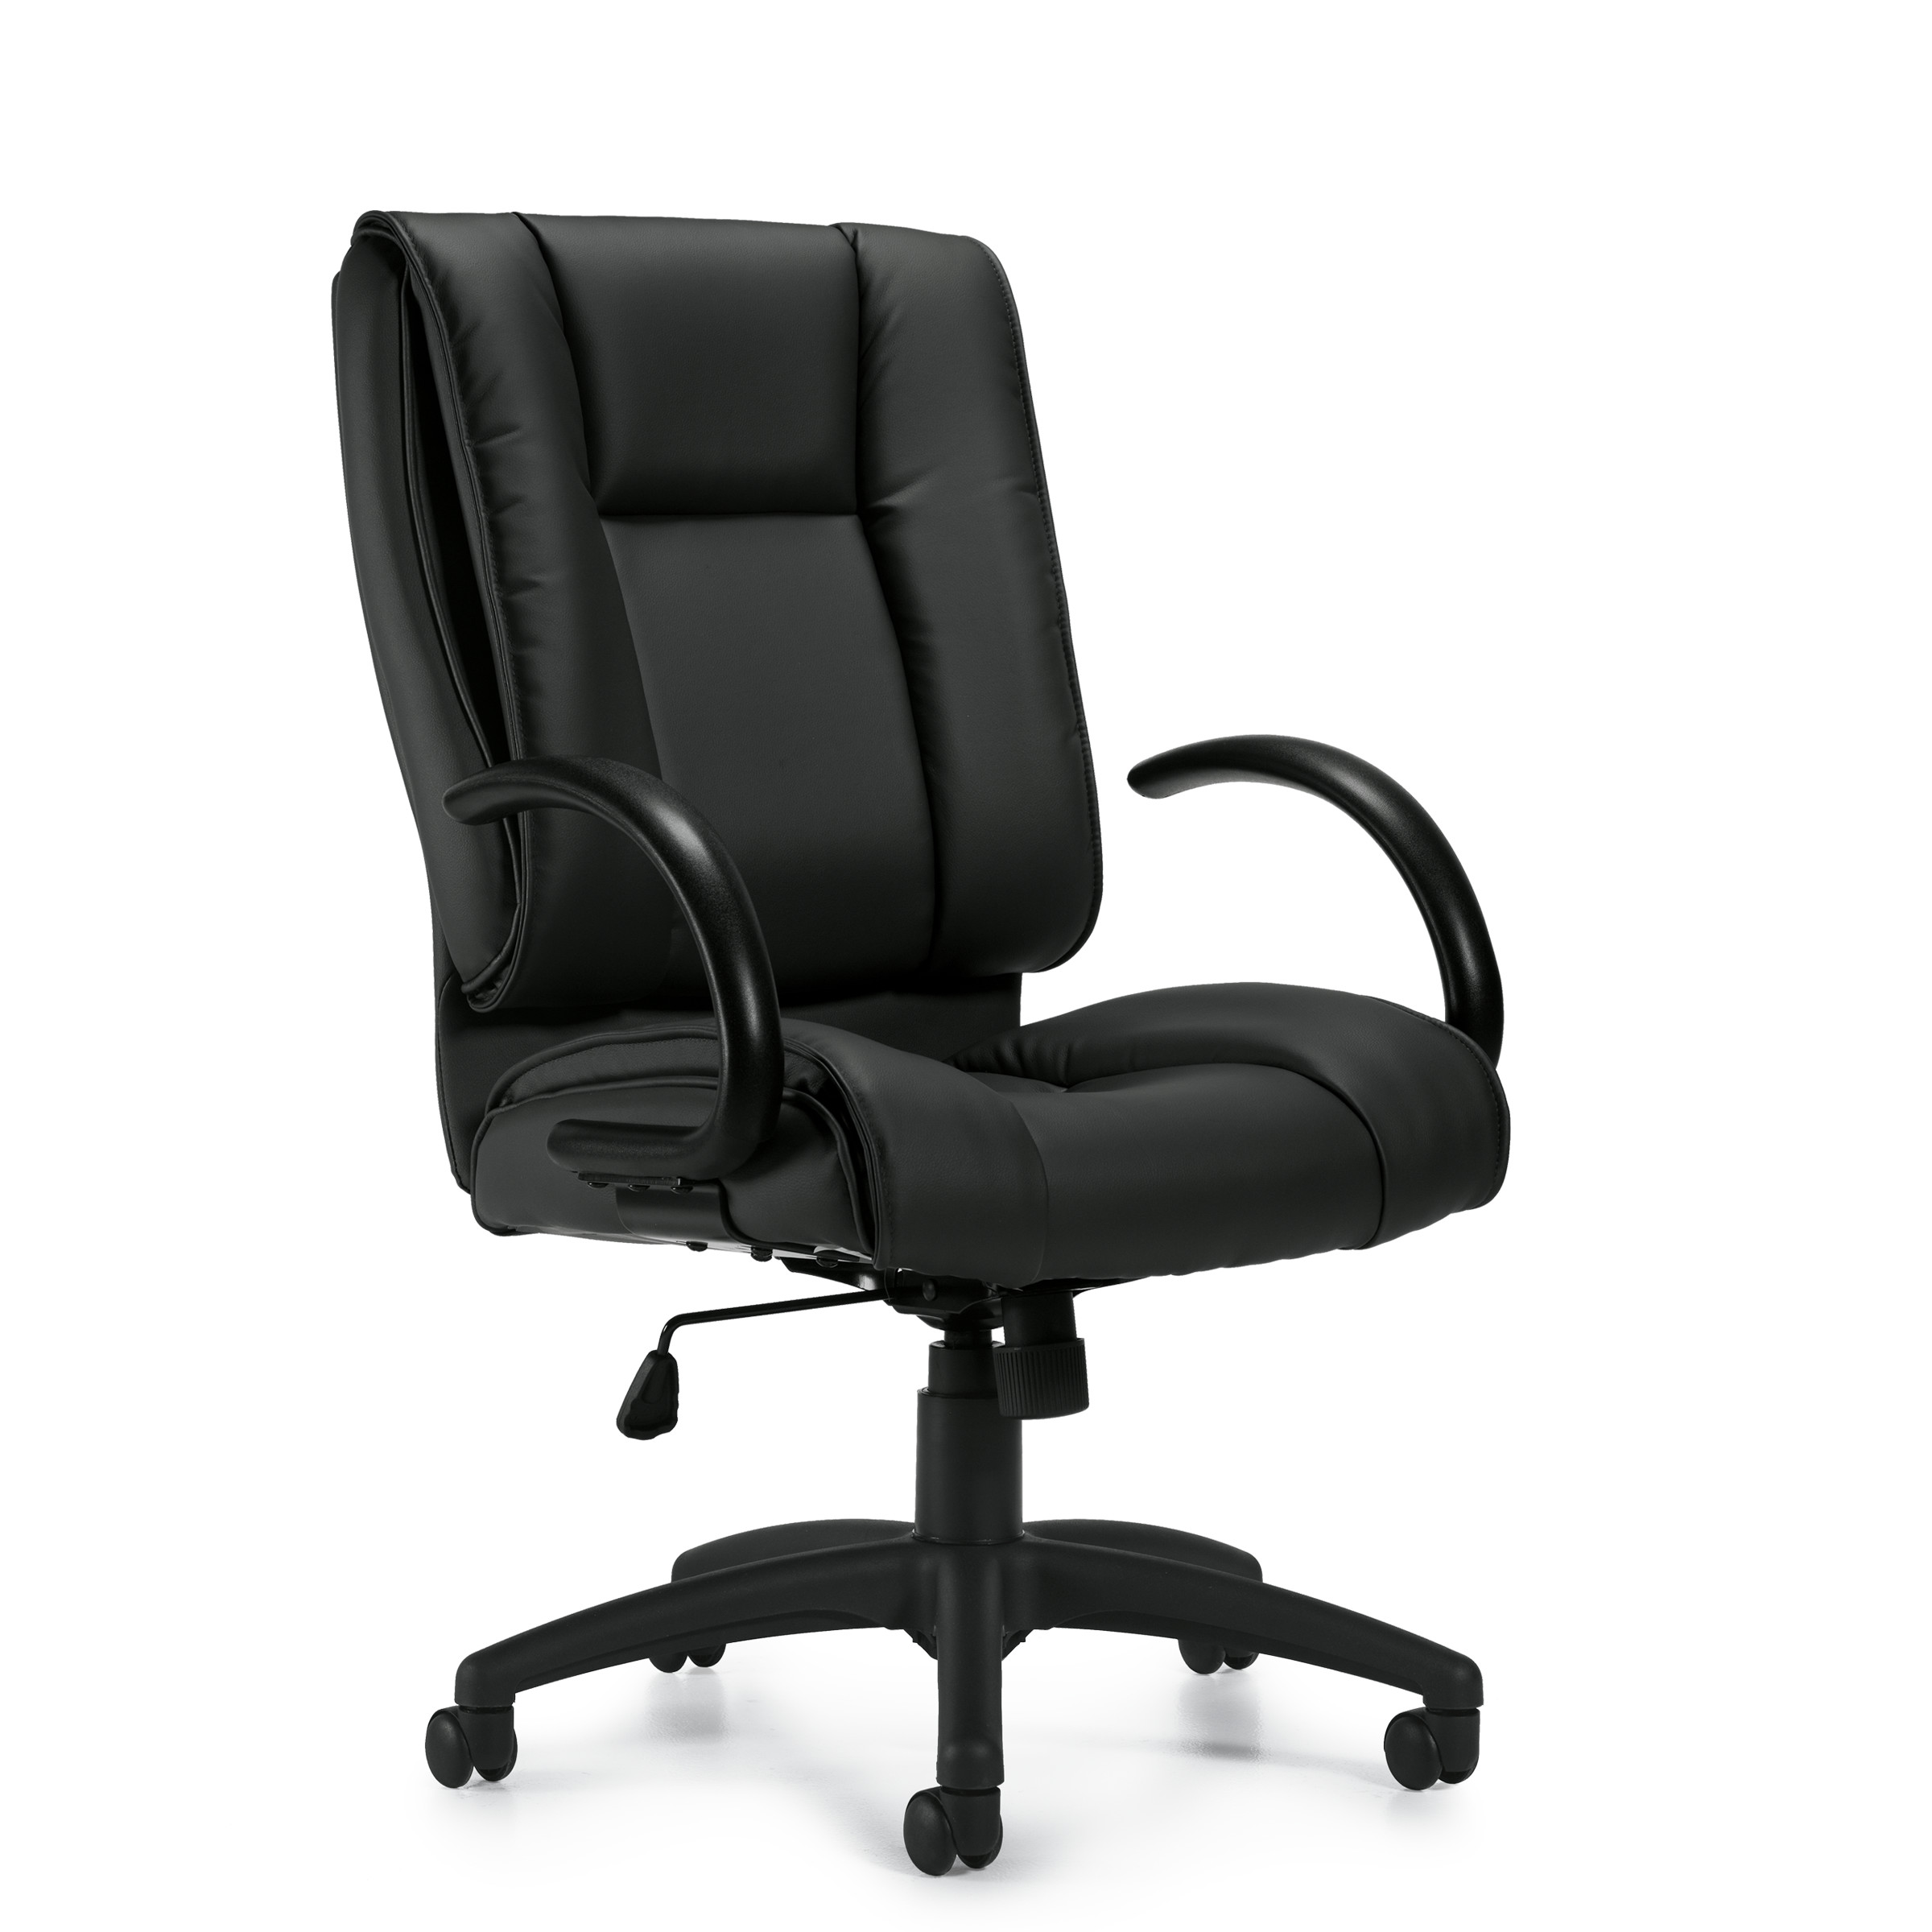 OTG Luxhide Executive Chair #OTG2700